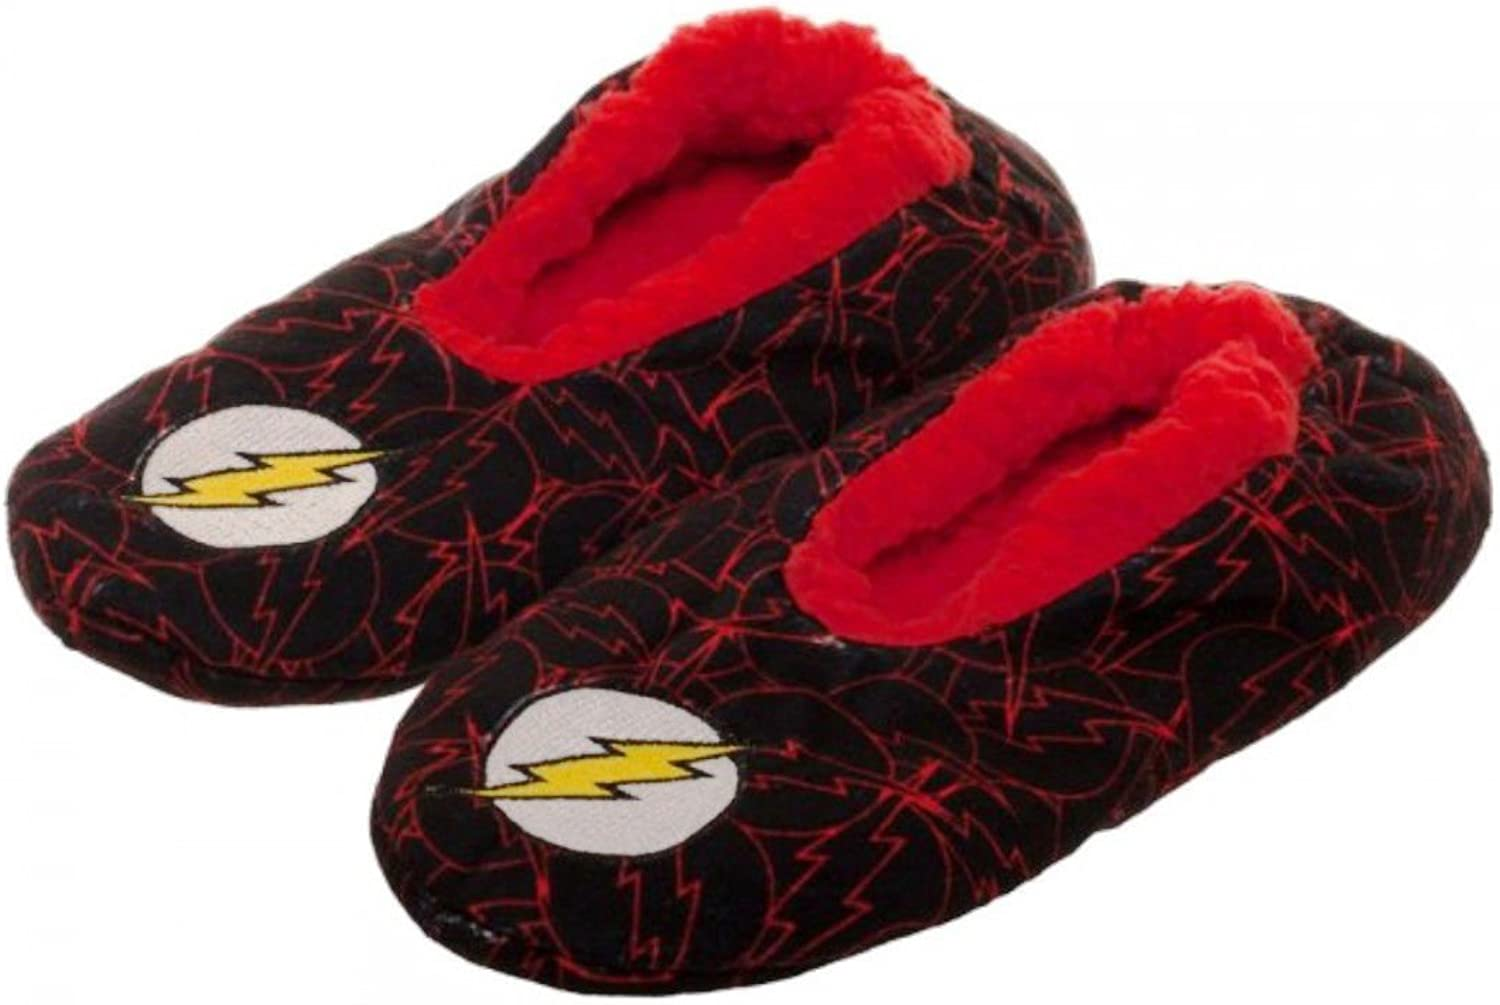 New Horizons Production DC Comics The Flash Shield Plush Cozy Unisex Adult Slippers